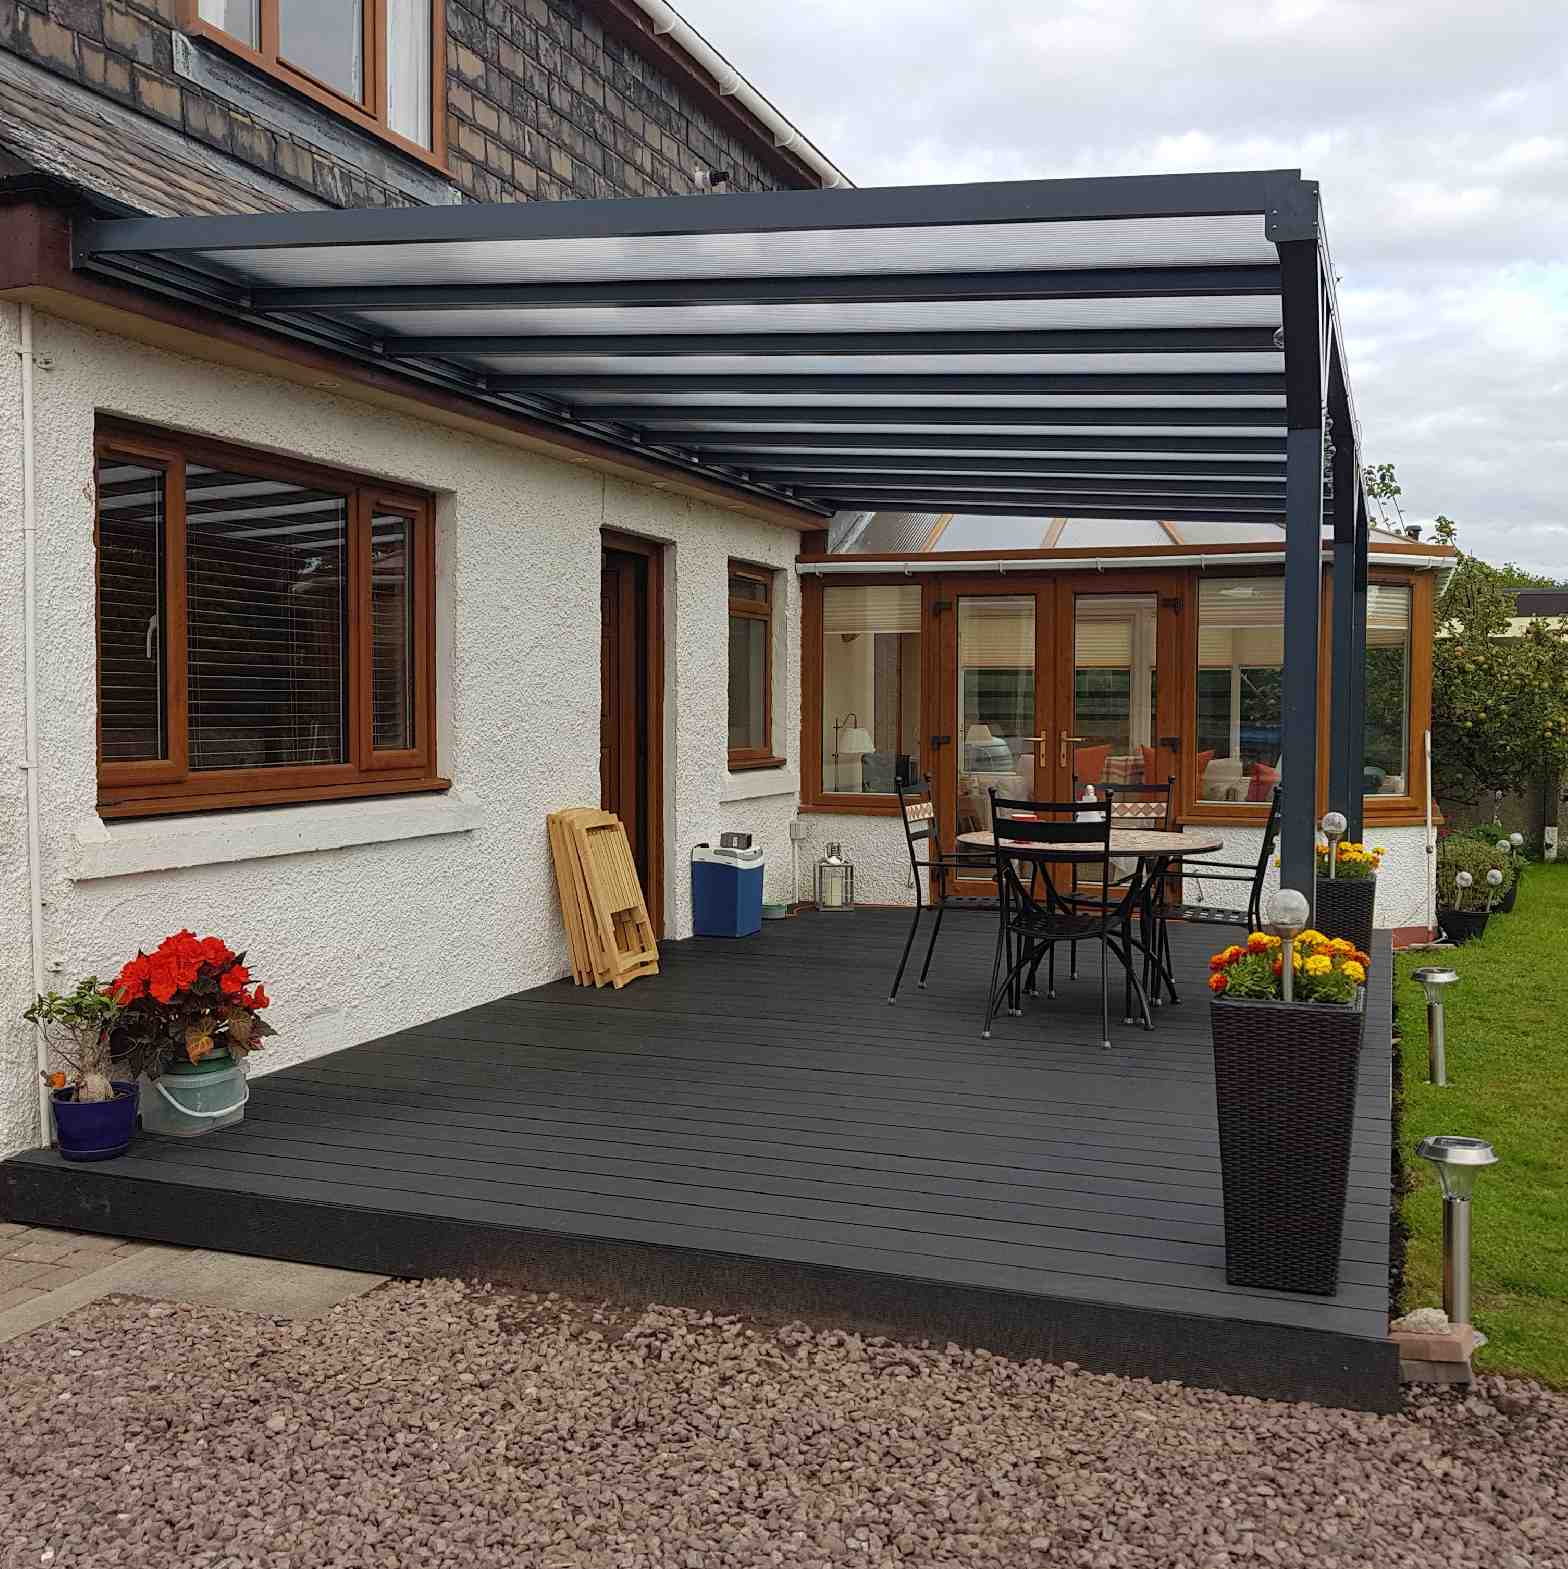 Buy Omega Verandah, Anthracite Grey, 16mm Polycarbonate Glazing - 5.2m (W) x 2.5m (P), (3) Supporting Posts online today